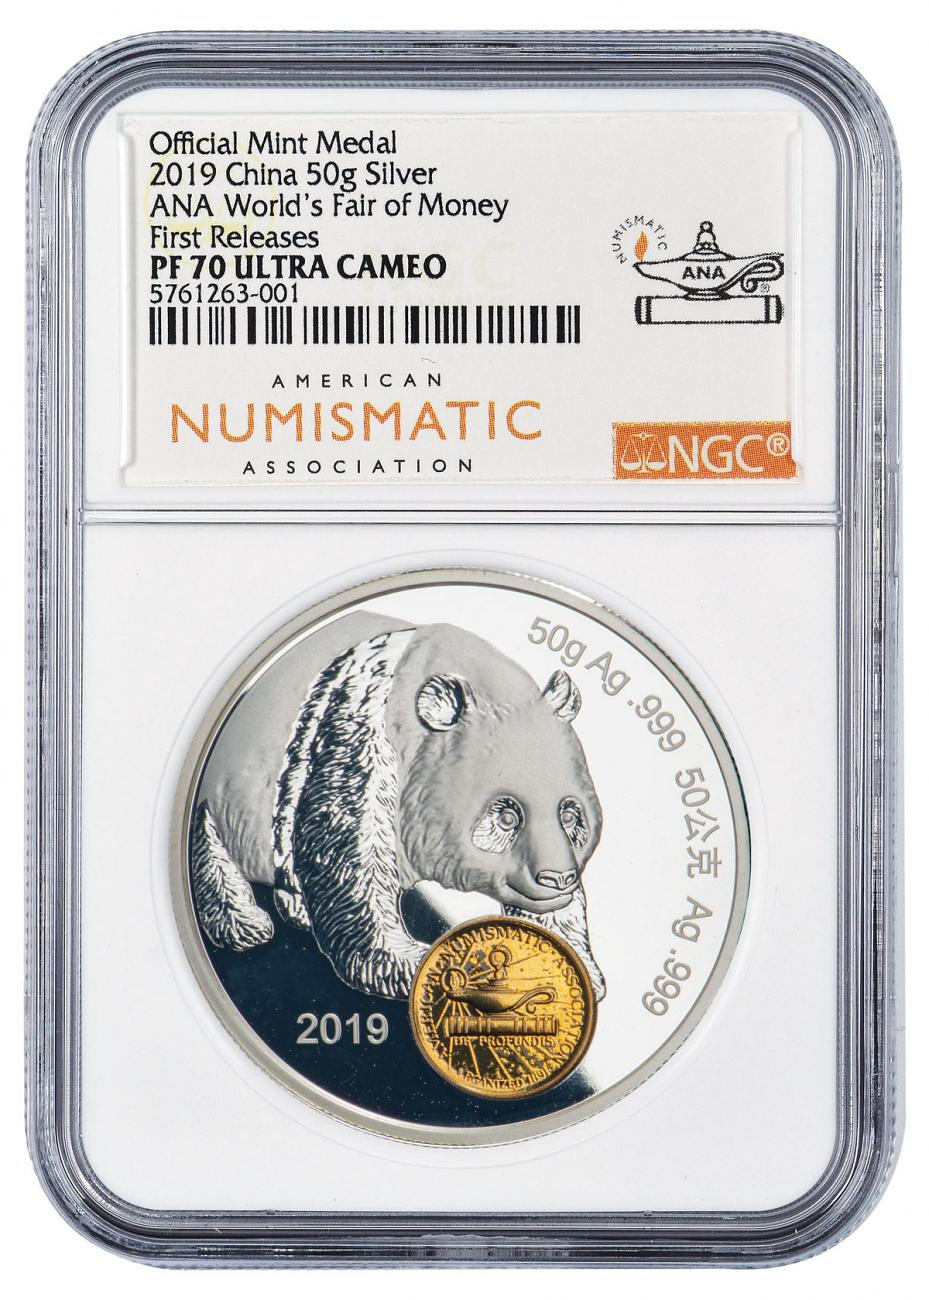 2019 China Chicago World's Fair of Money Show Panda 50 g Silver Proof Medal NGC PF70 UC FR